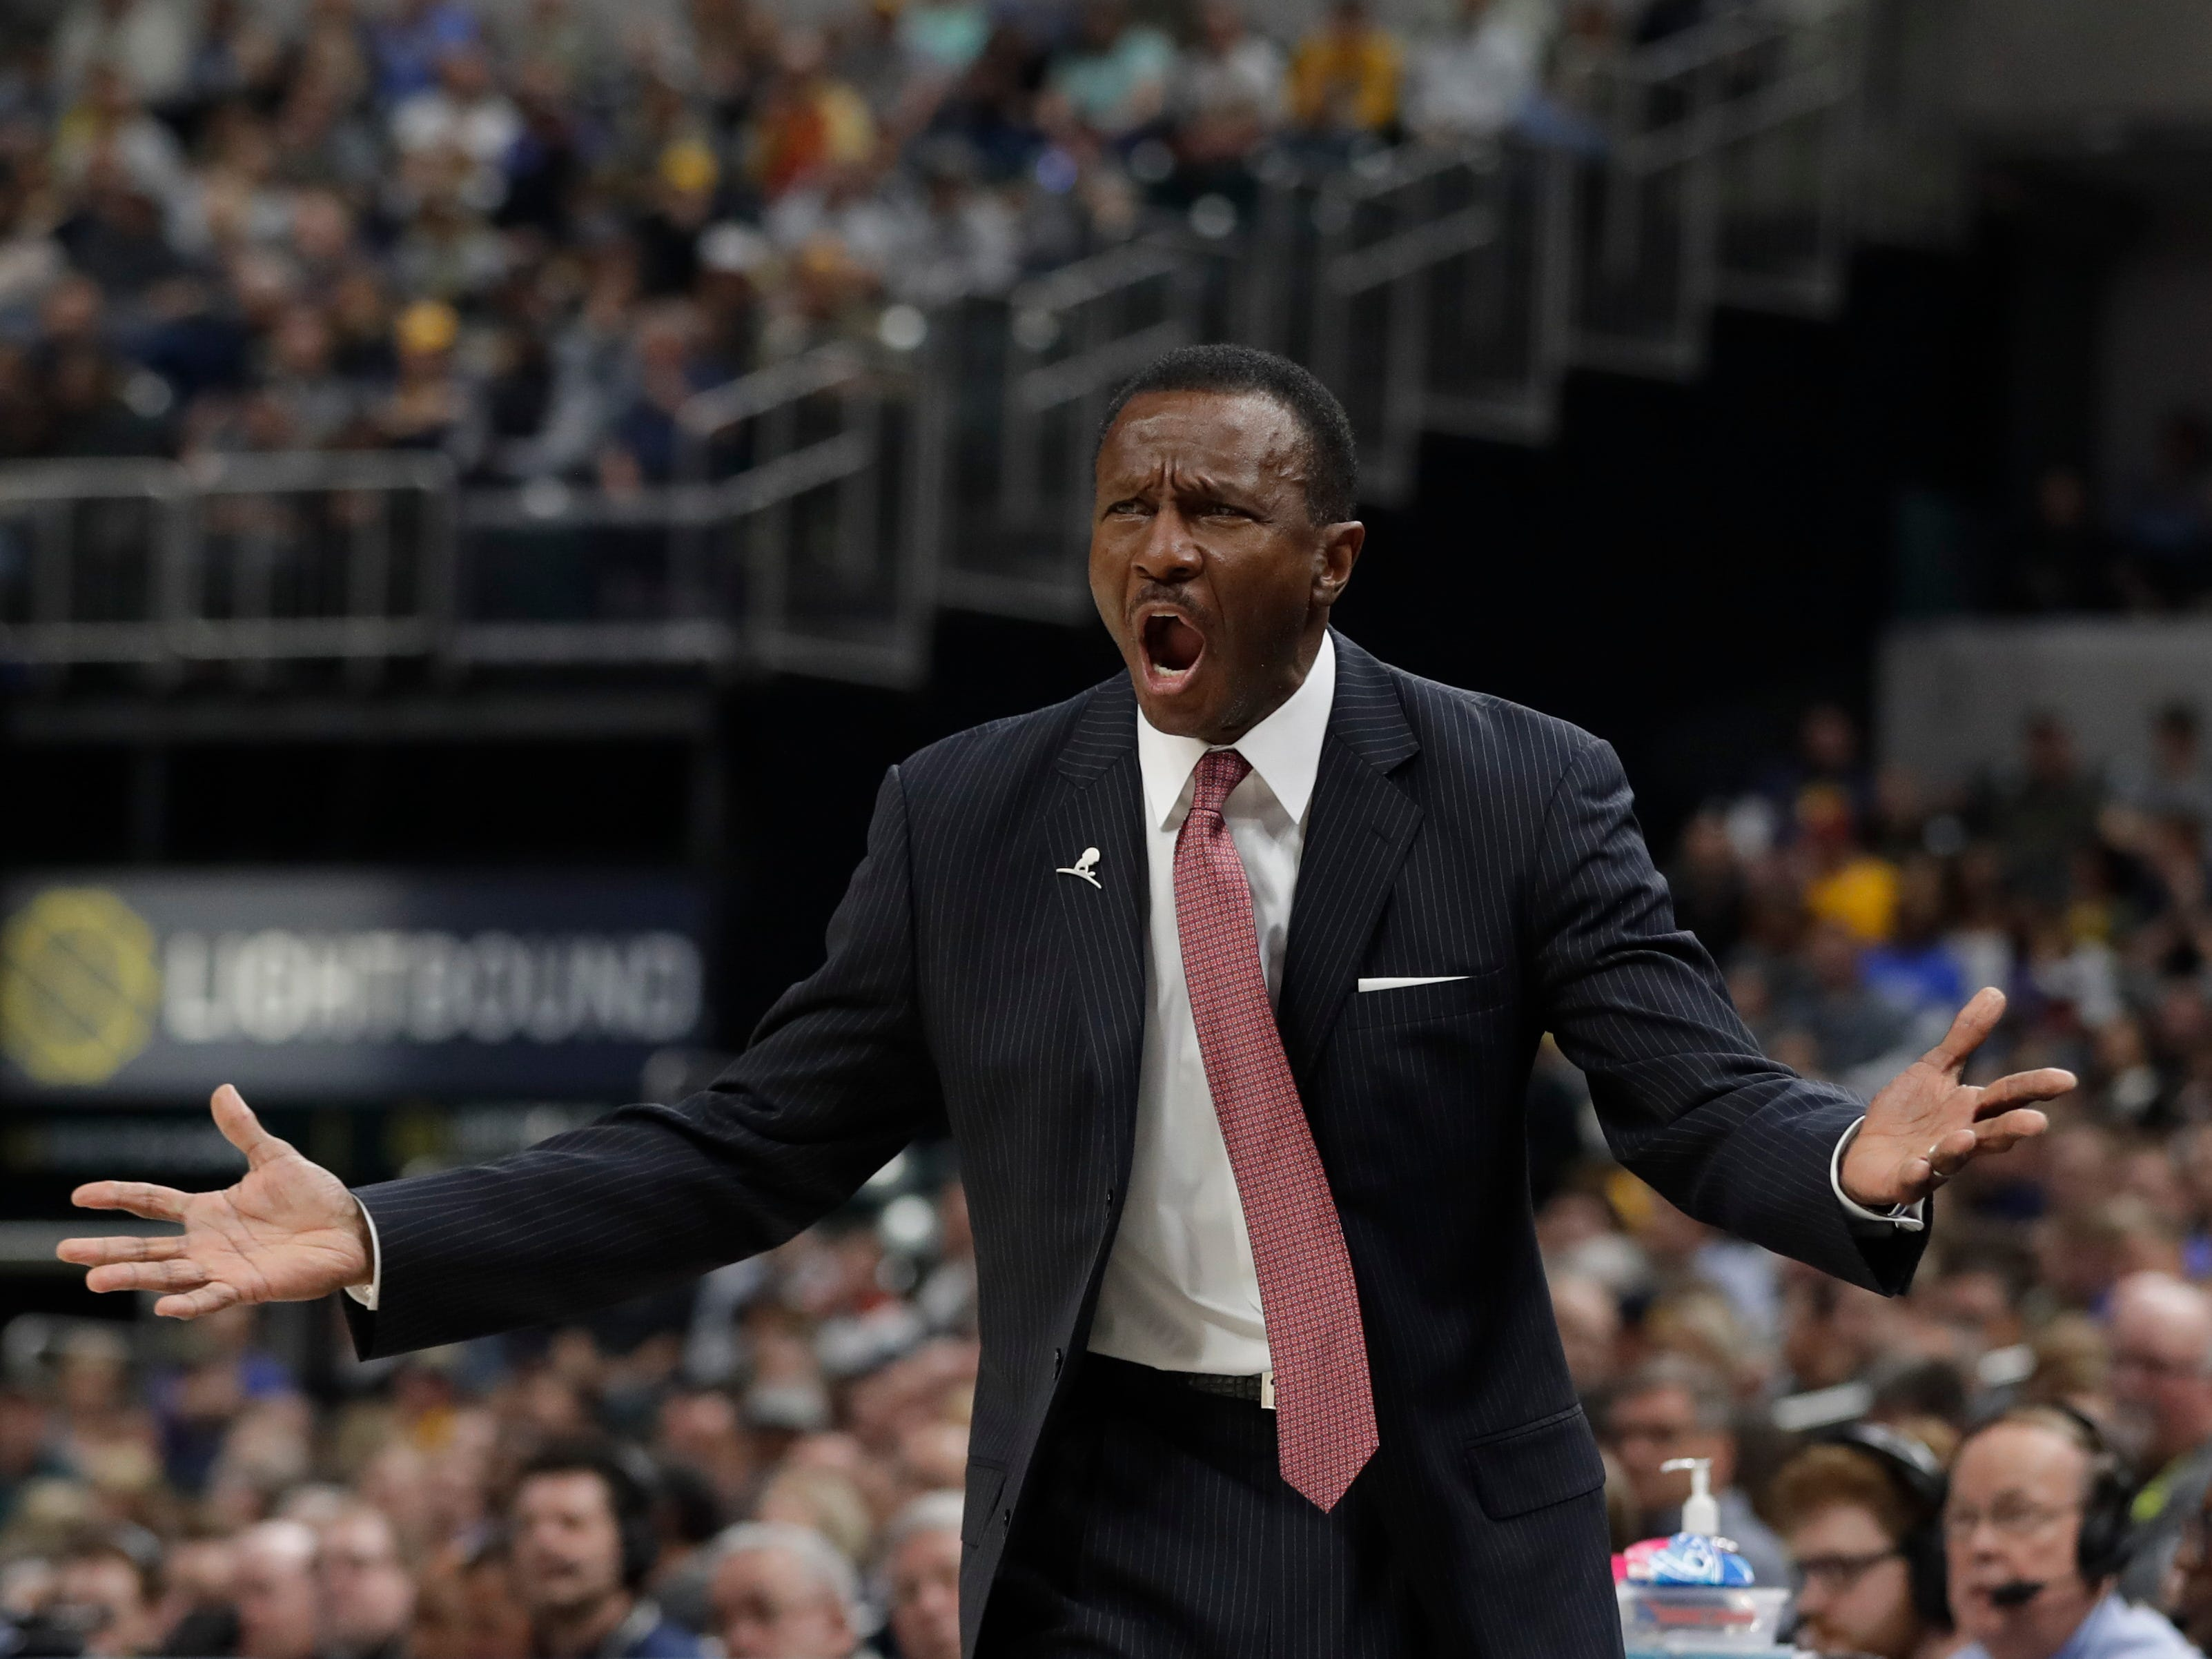 Detroit Pistons coach Dwane Casey argues a call during the first half against the Indiana Pacers, Monday, April 1, 2019, in Indianapolis.